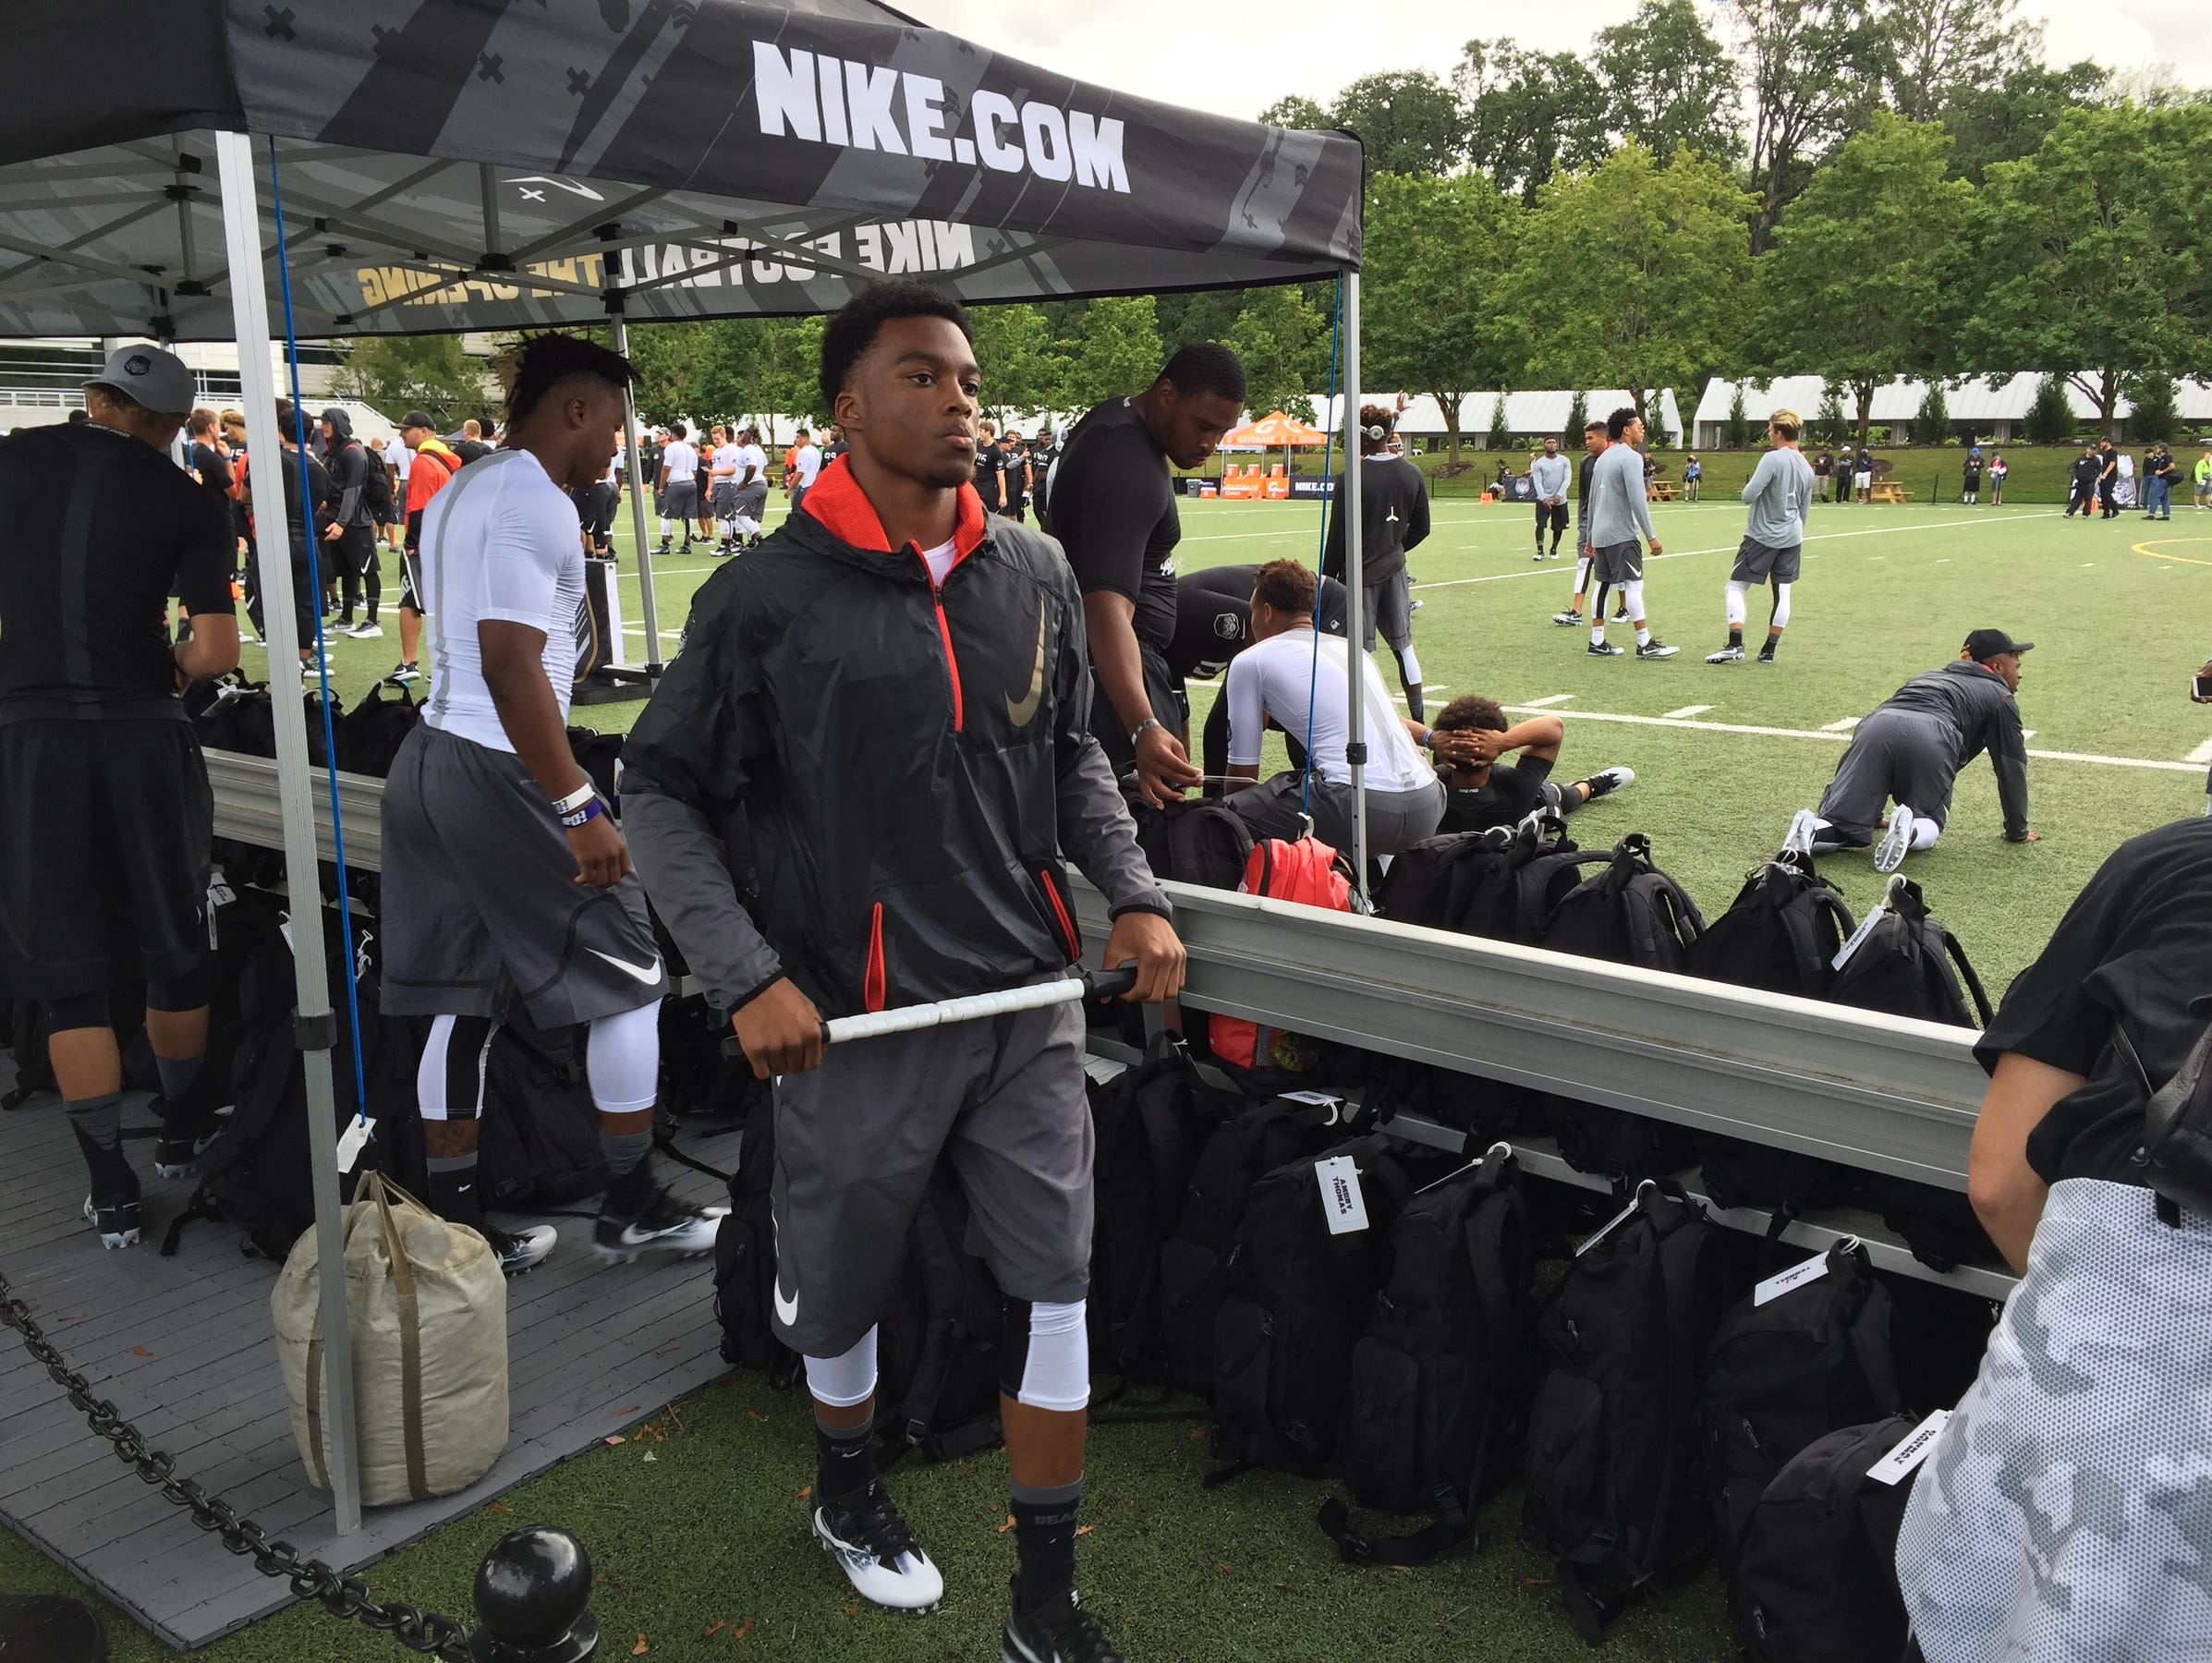 Ambry Thomas at The Opening in Oregon.